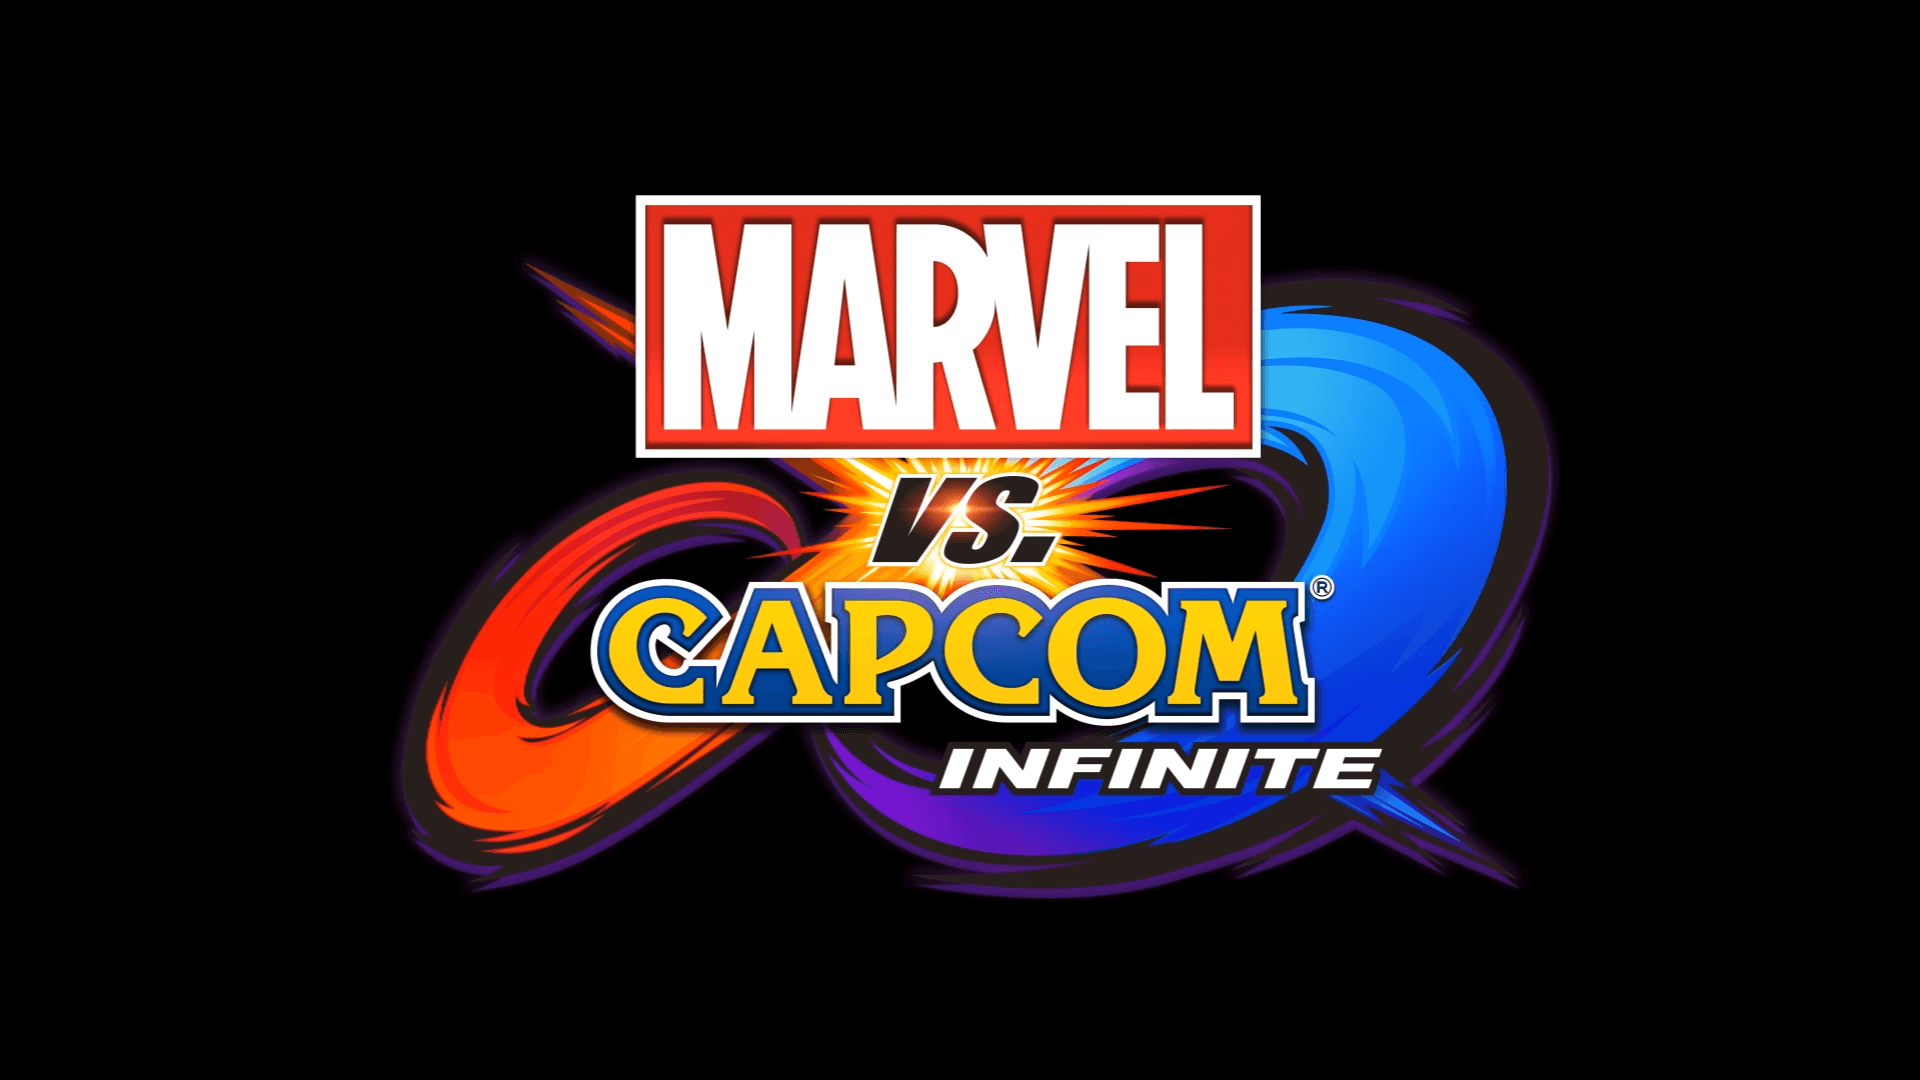 Marvel vs Capcom: Infinite Announced for PS4 and PC